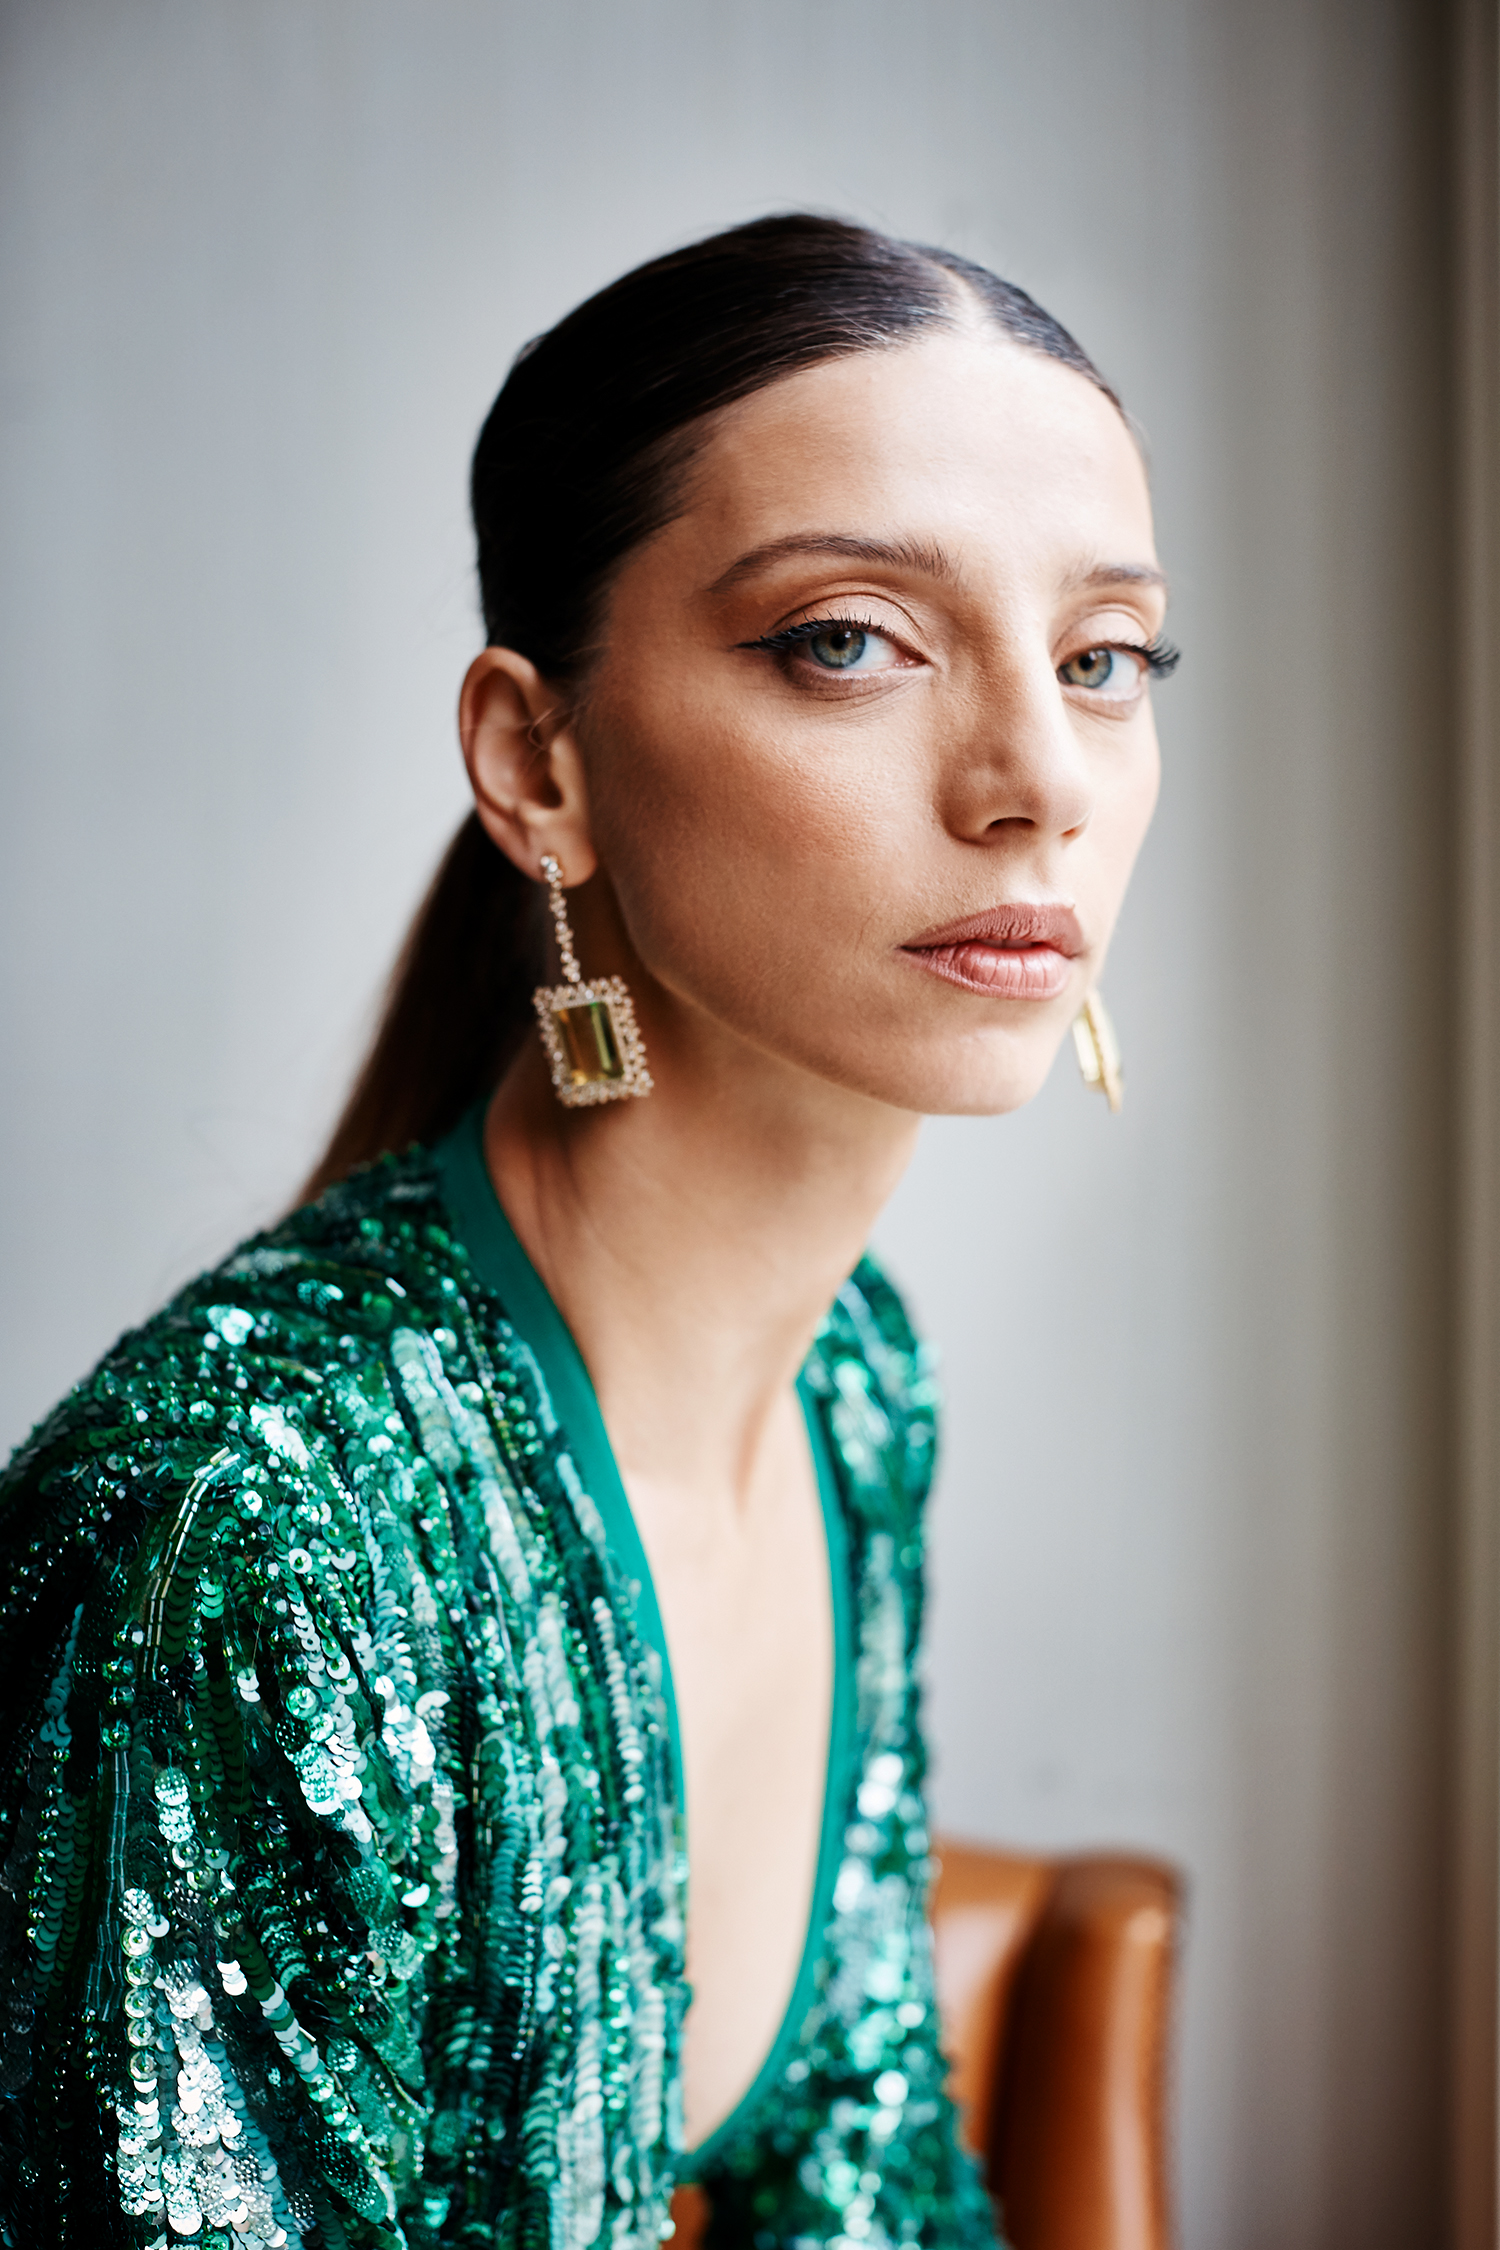 Angela-Sarafyan-by-Weston-Wells.jpg